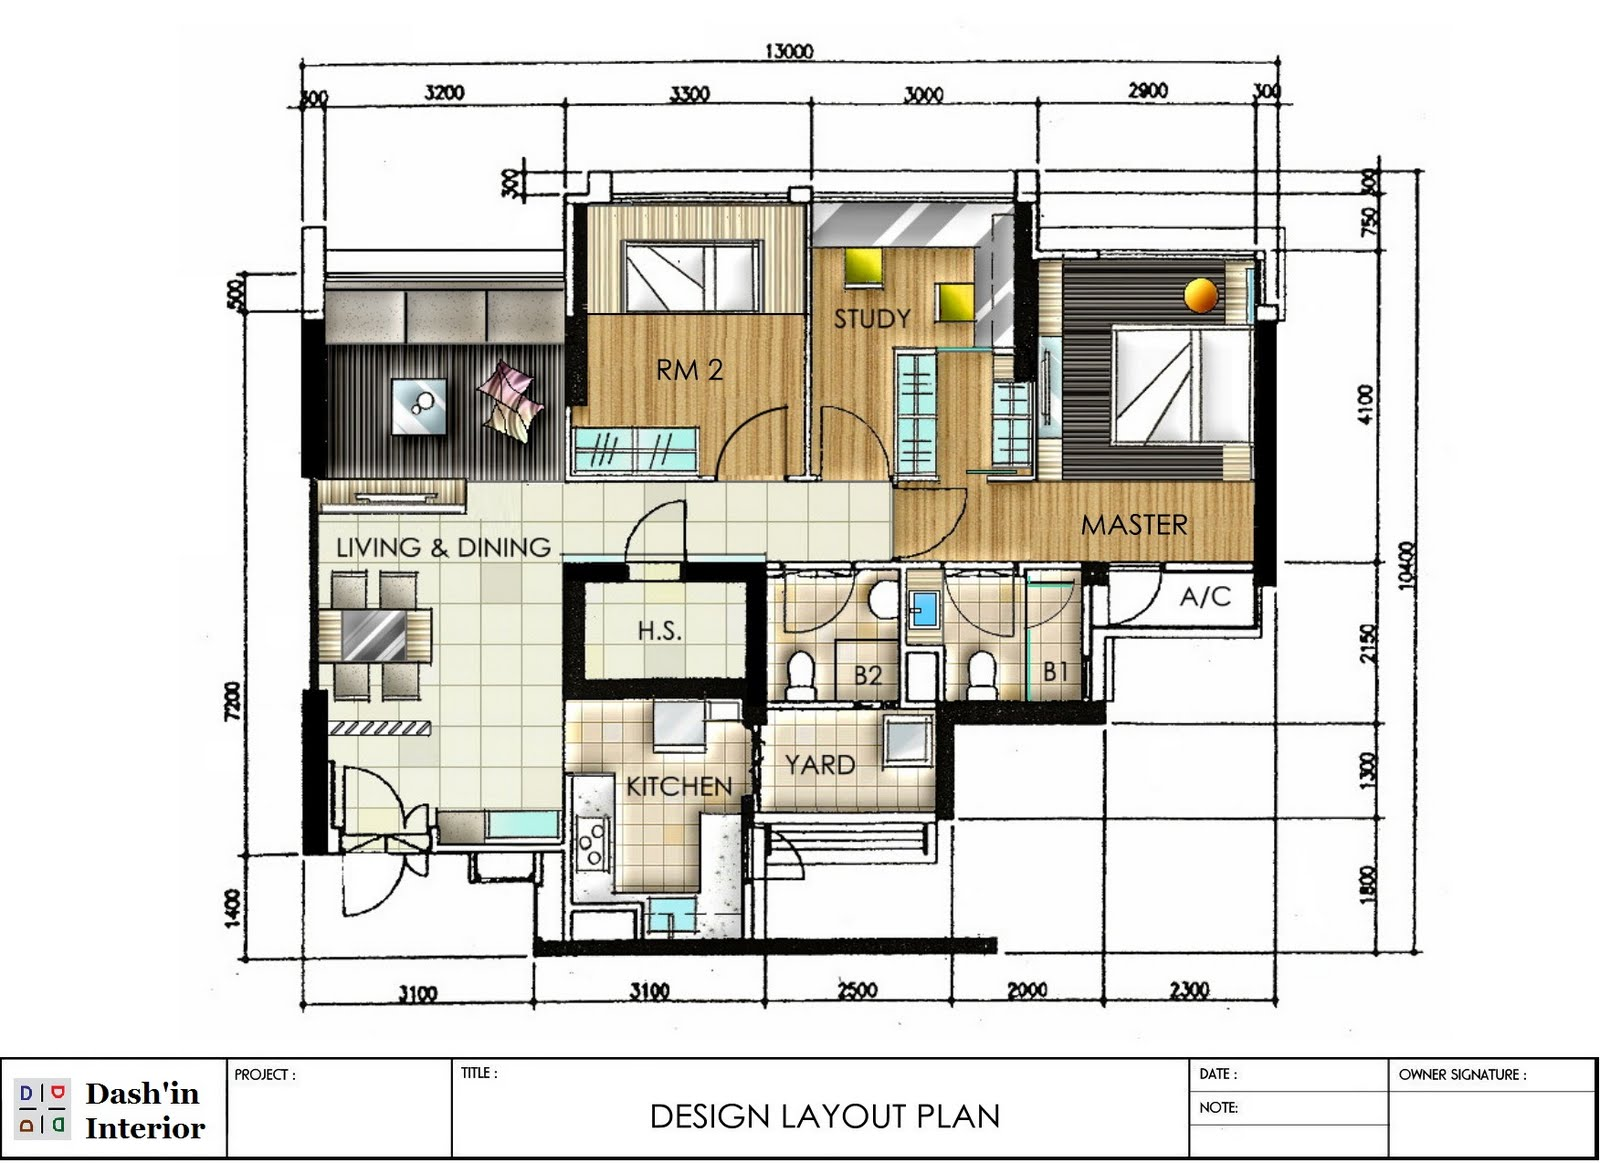 Dash 39 in interior hand drawn designs floor plan layout for Create my floor plan